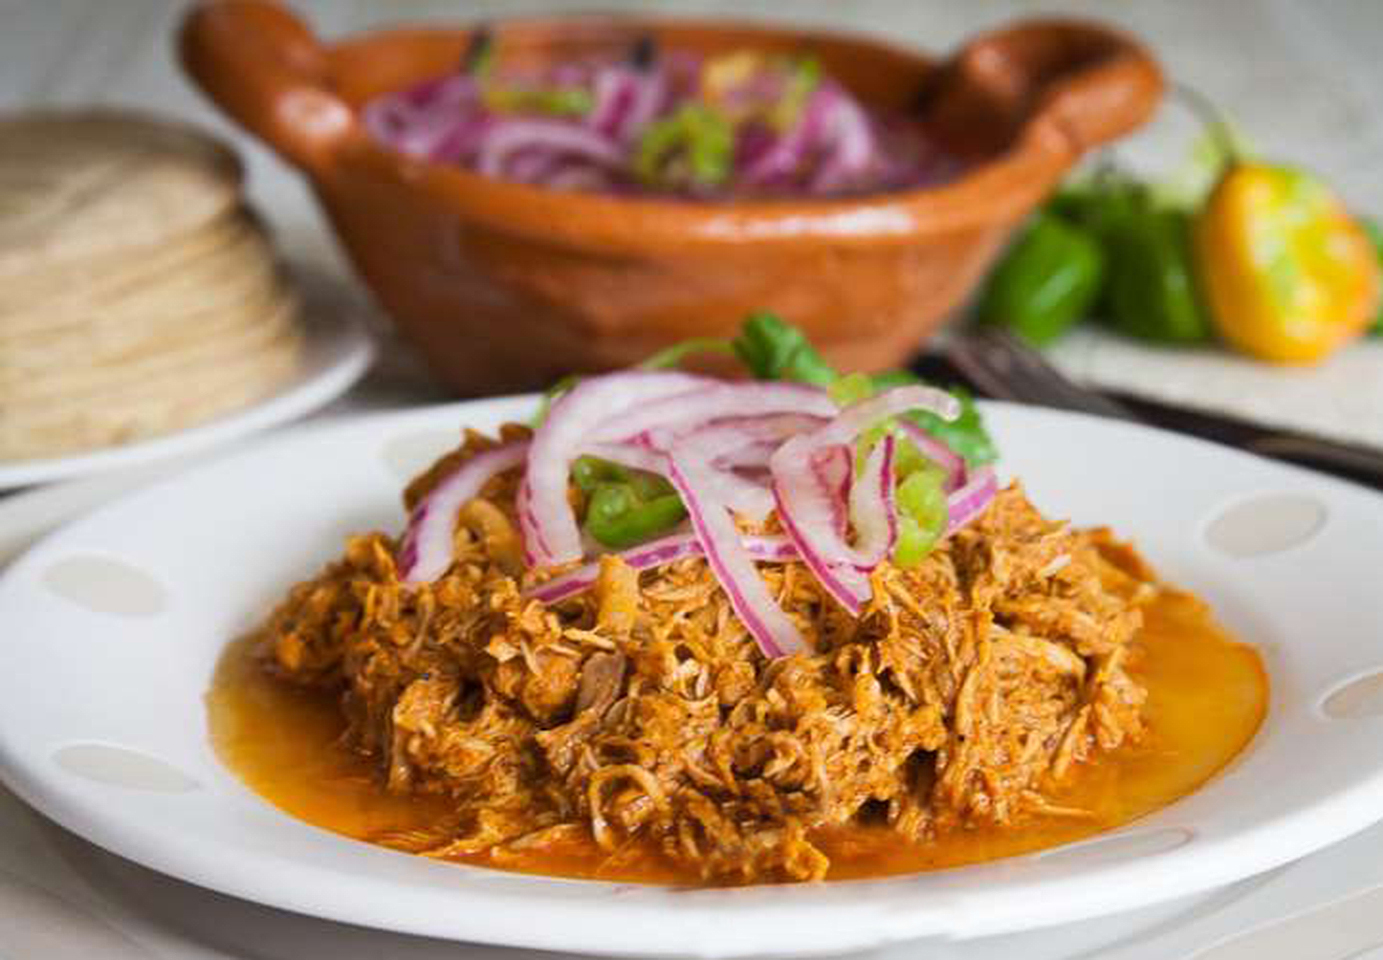 """Cochinita Pibil is a traditional Mexican version of pulled pork. """"This cochinita pibil recipe is straight from Mexico,"""" says Chef Gaby Cervello. """"Pork shoulder is cooked in a spicy red annatto paste and orange juice sauce, then shredded and served with habanero sauce."""""""